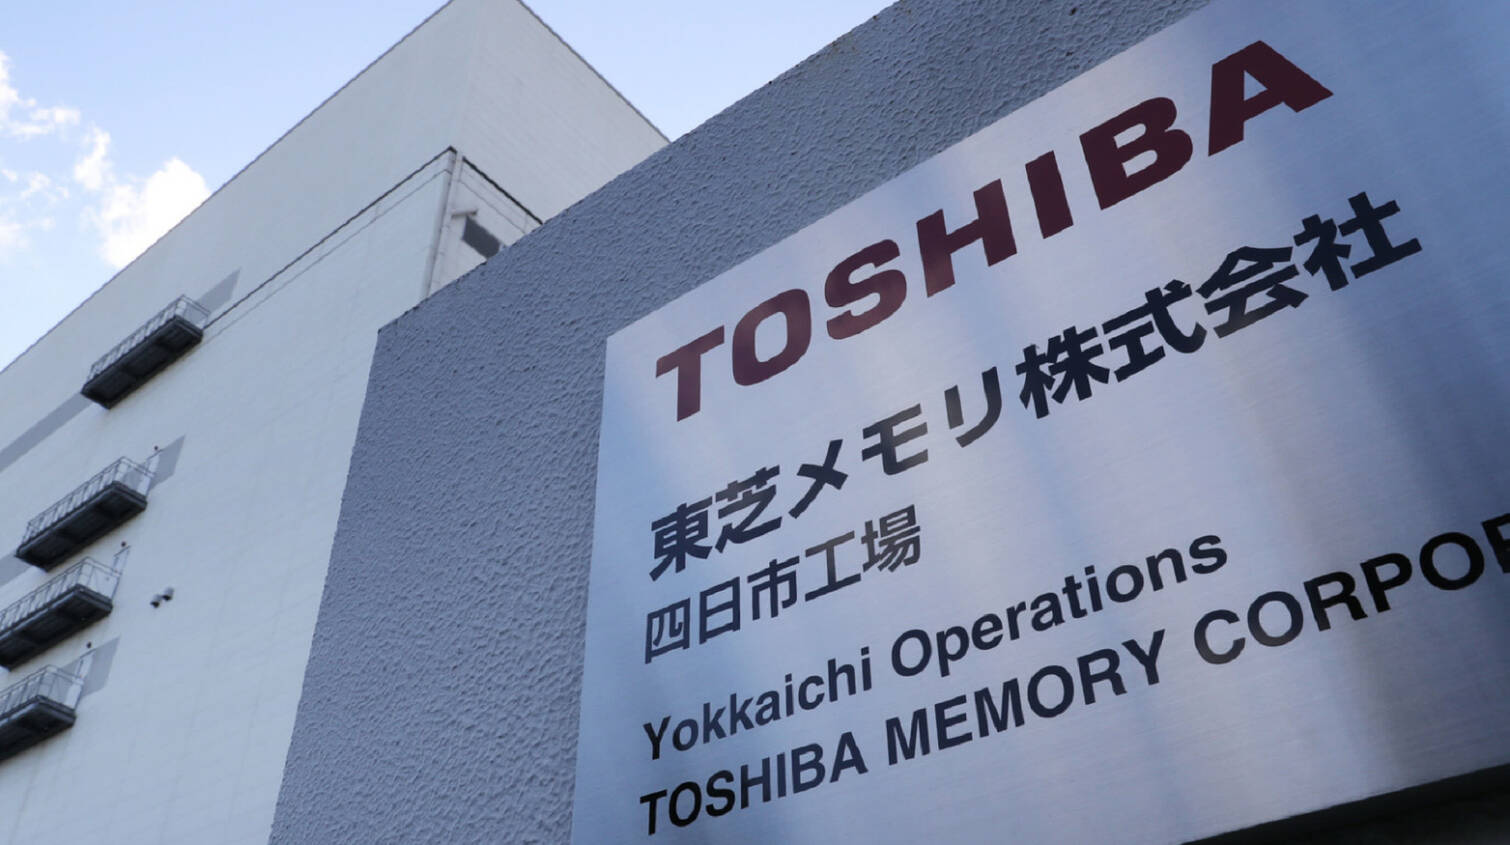 Toshiba, WD NAND Production in Yokkaichi Hit With Power Outage: 6 Exabytes of NAND Production Affected